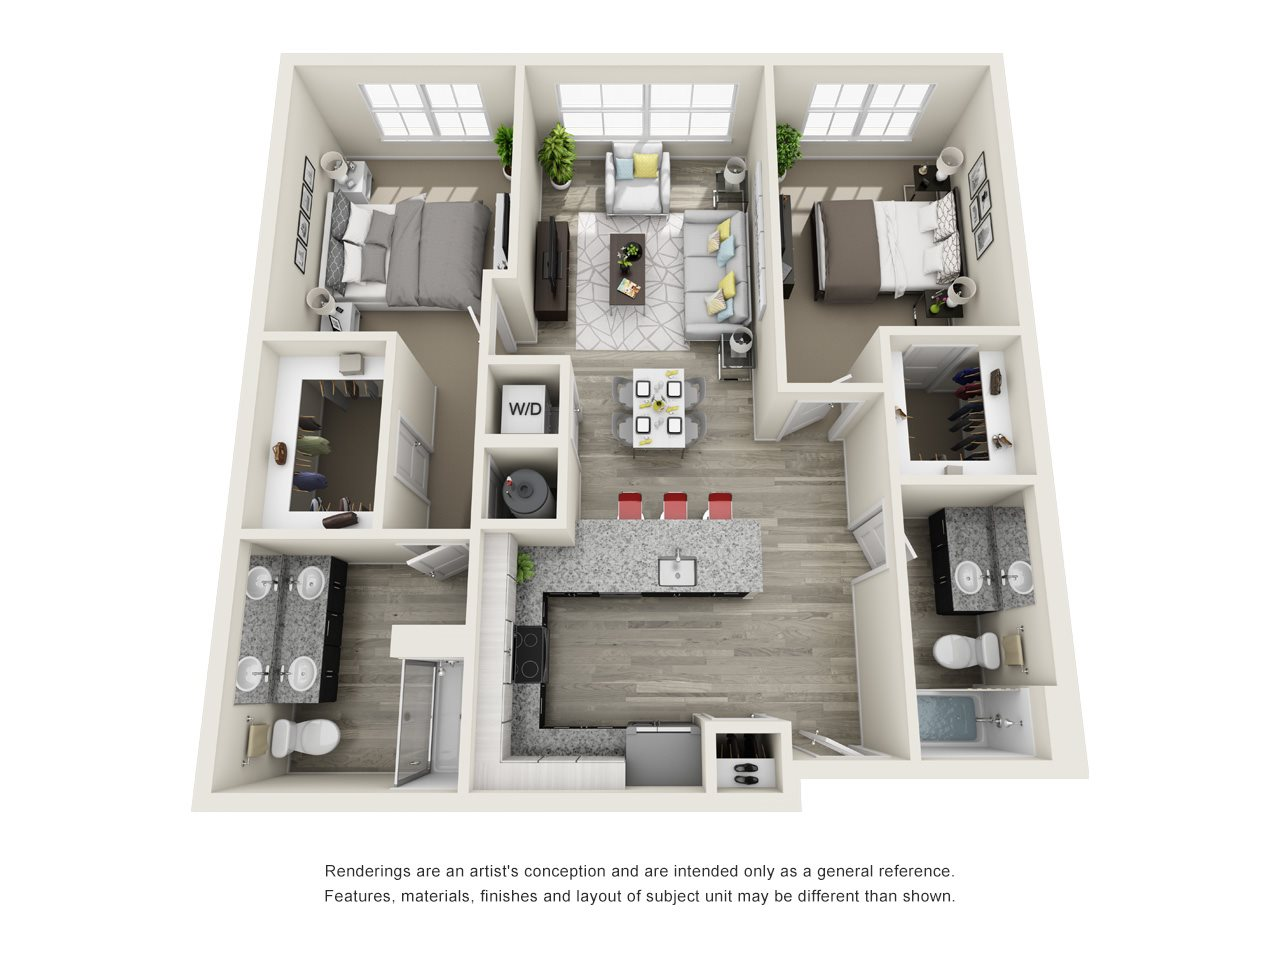 2 Bedroom, 2 Bath 1014 sqft Floor Plan 12